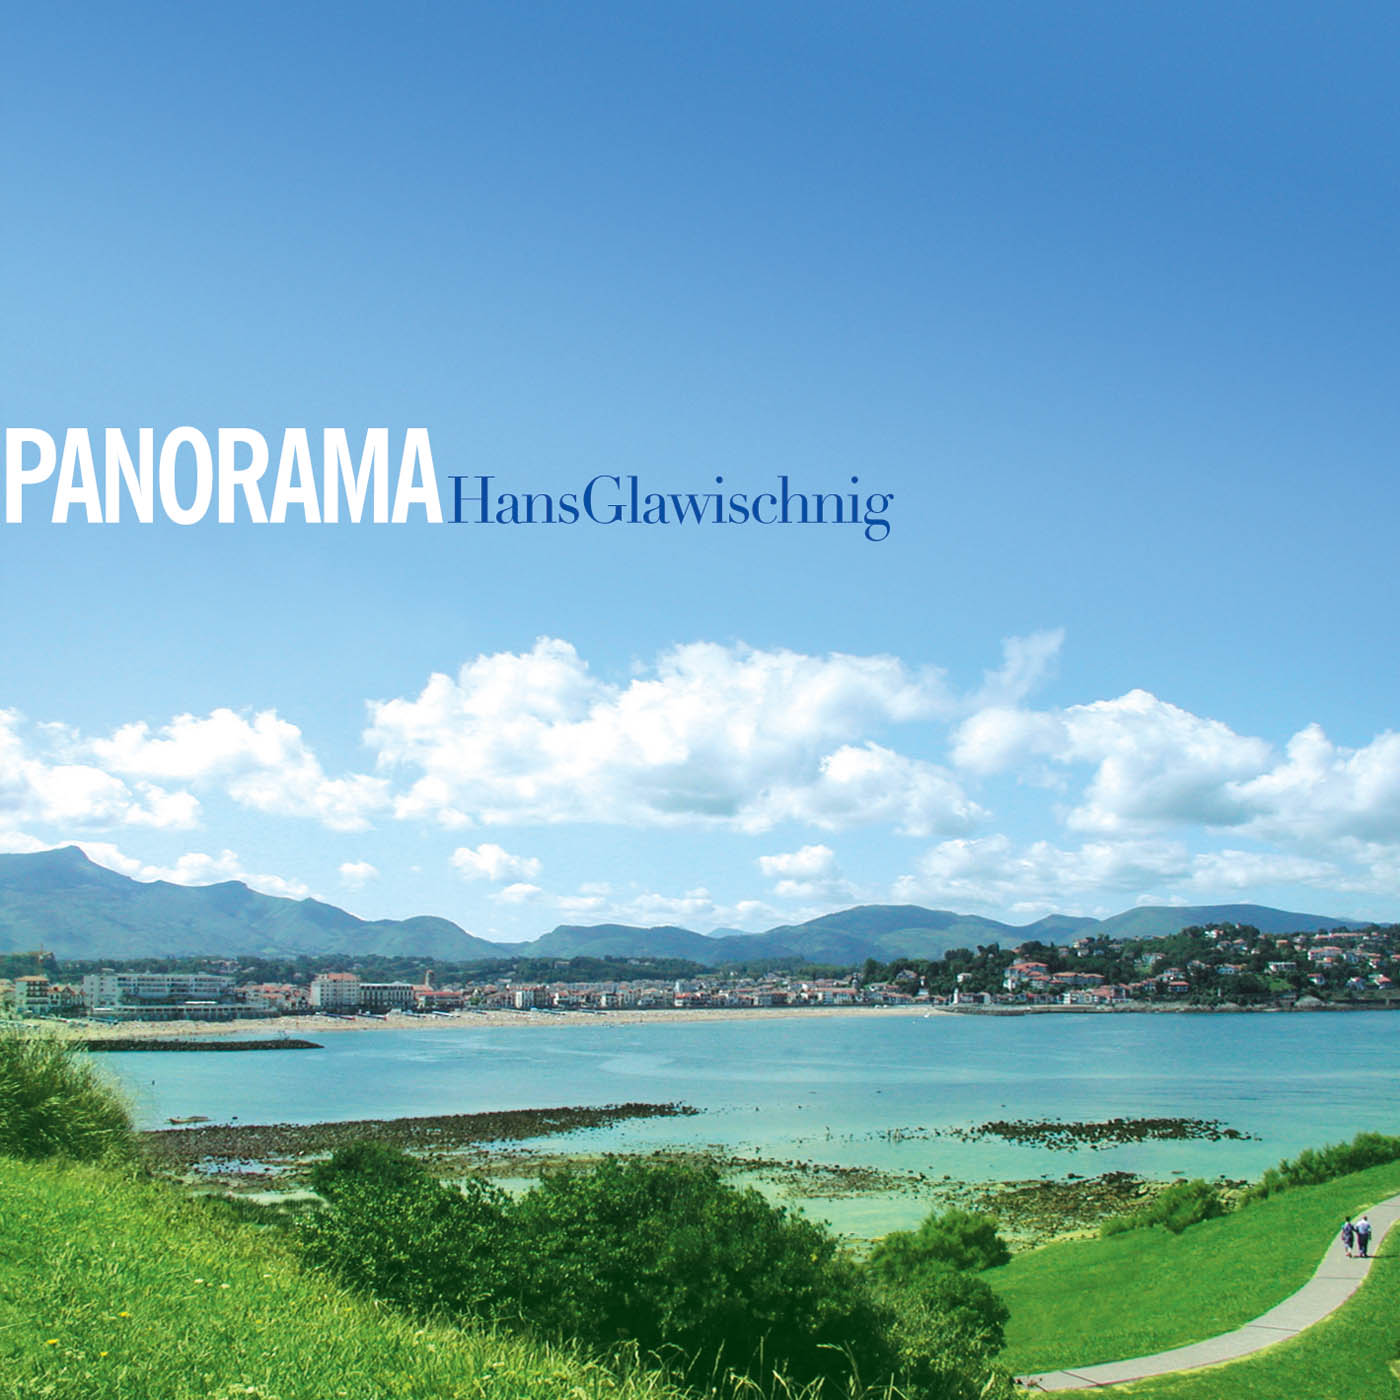 Panorama by Hans Glawishnig cover